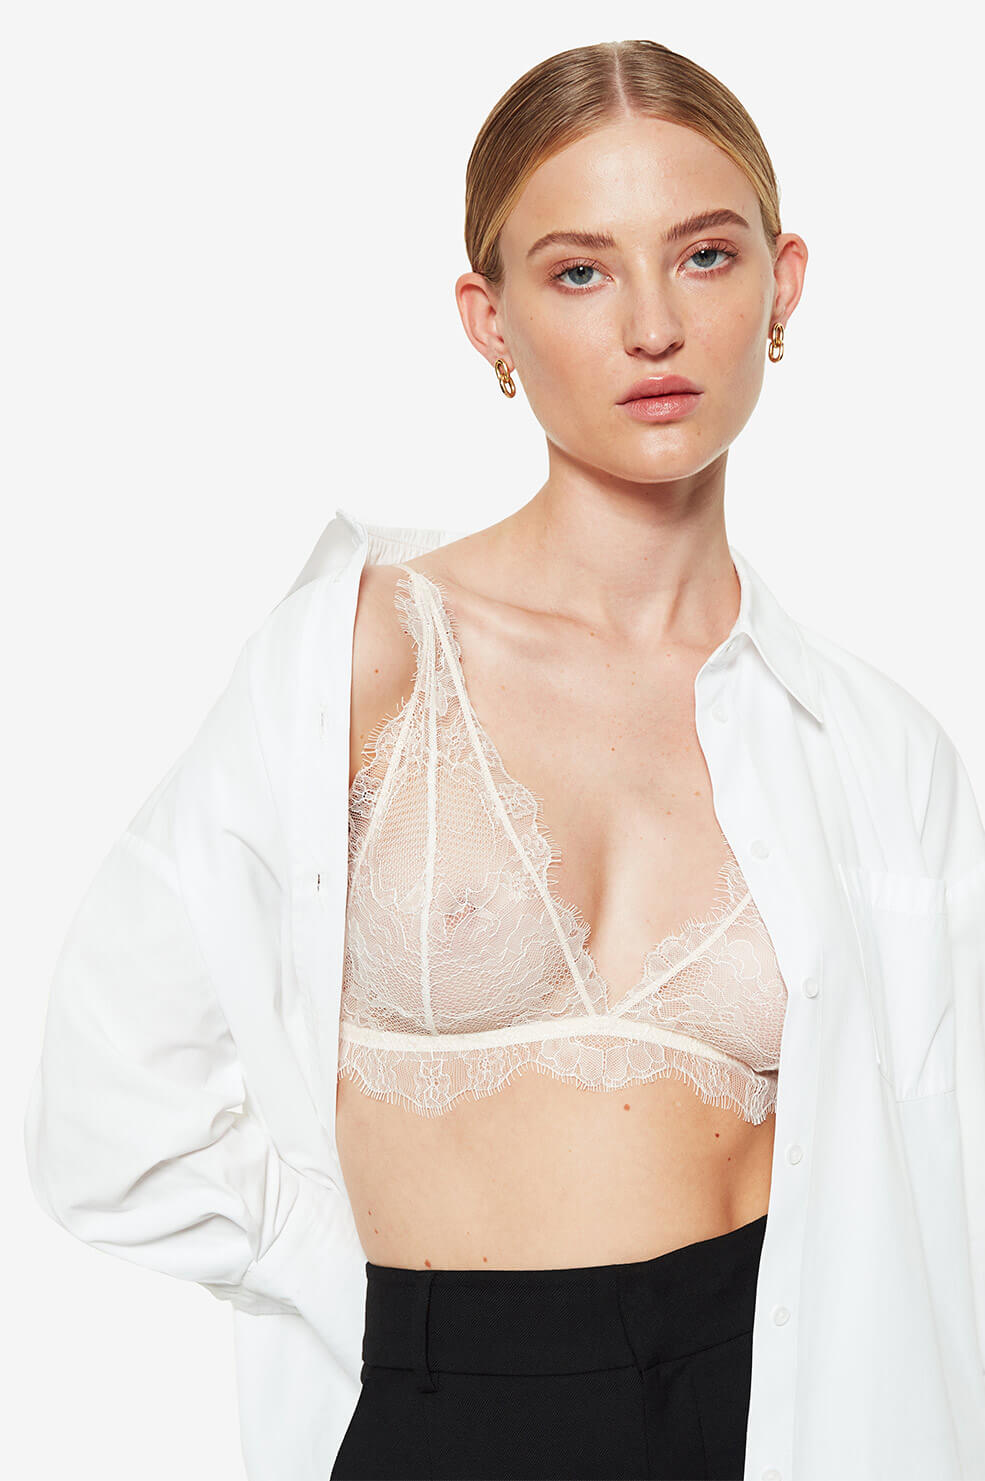 ANINE BING Delicate Lace Bra - Nude Pink